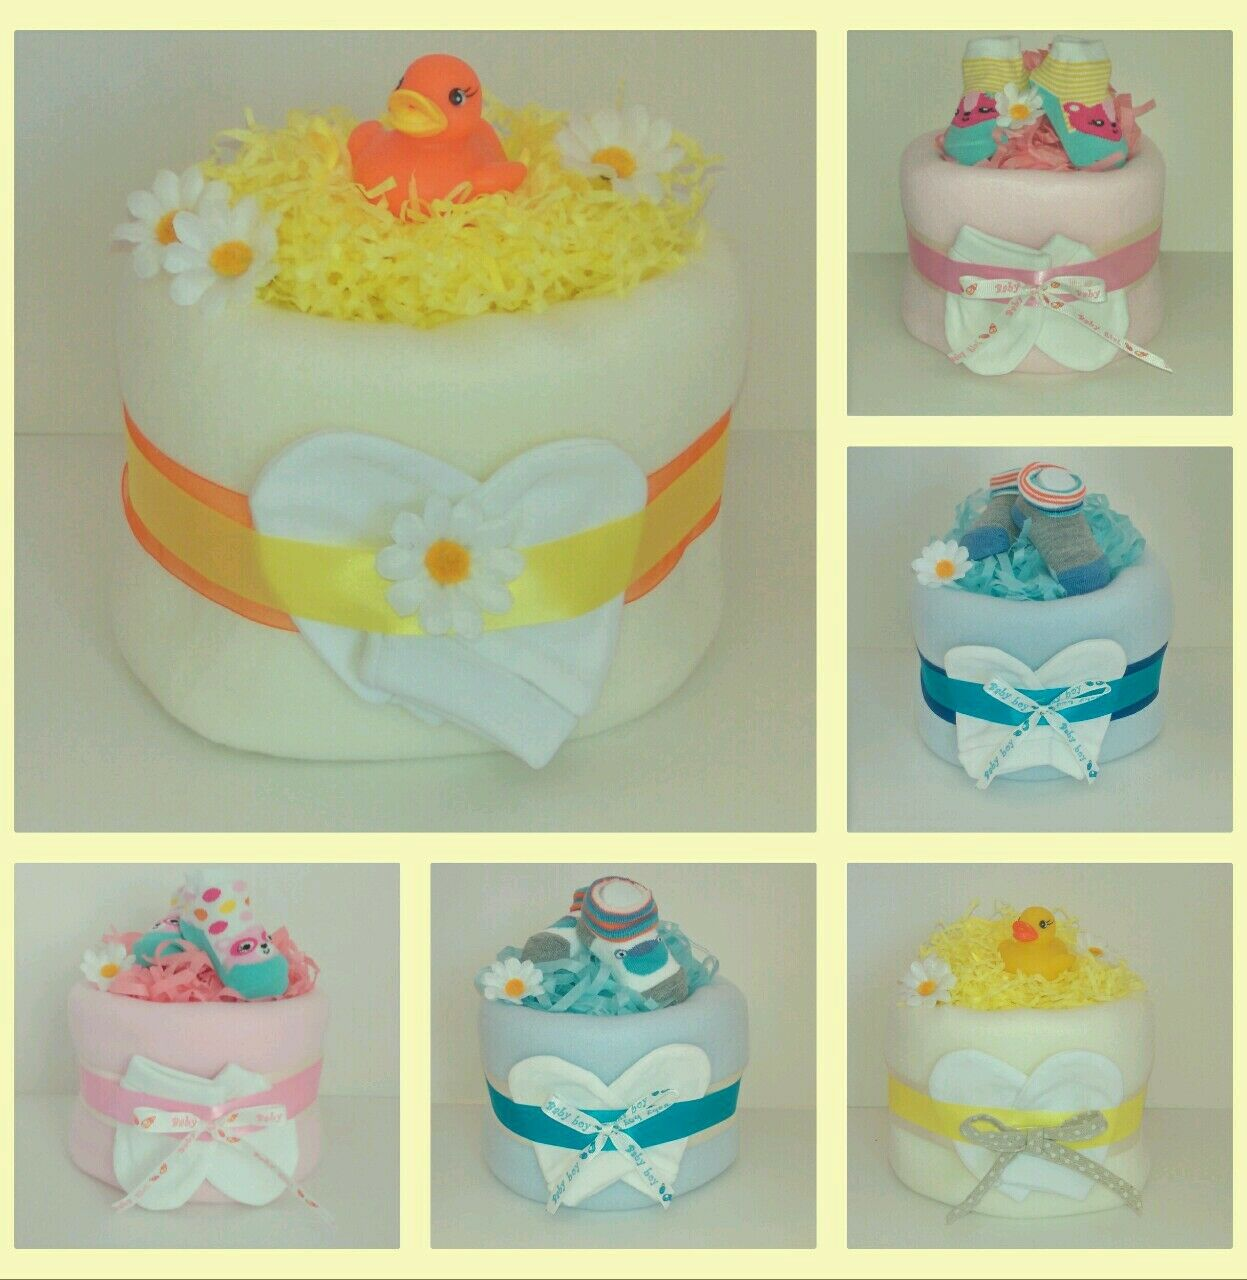 Hermes Baby Gifts Uk : Nappy cake baby shower gift tier girl boy unisex ?